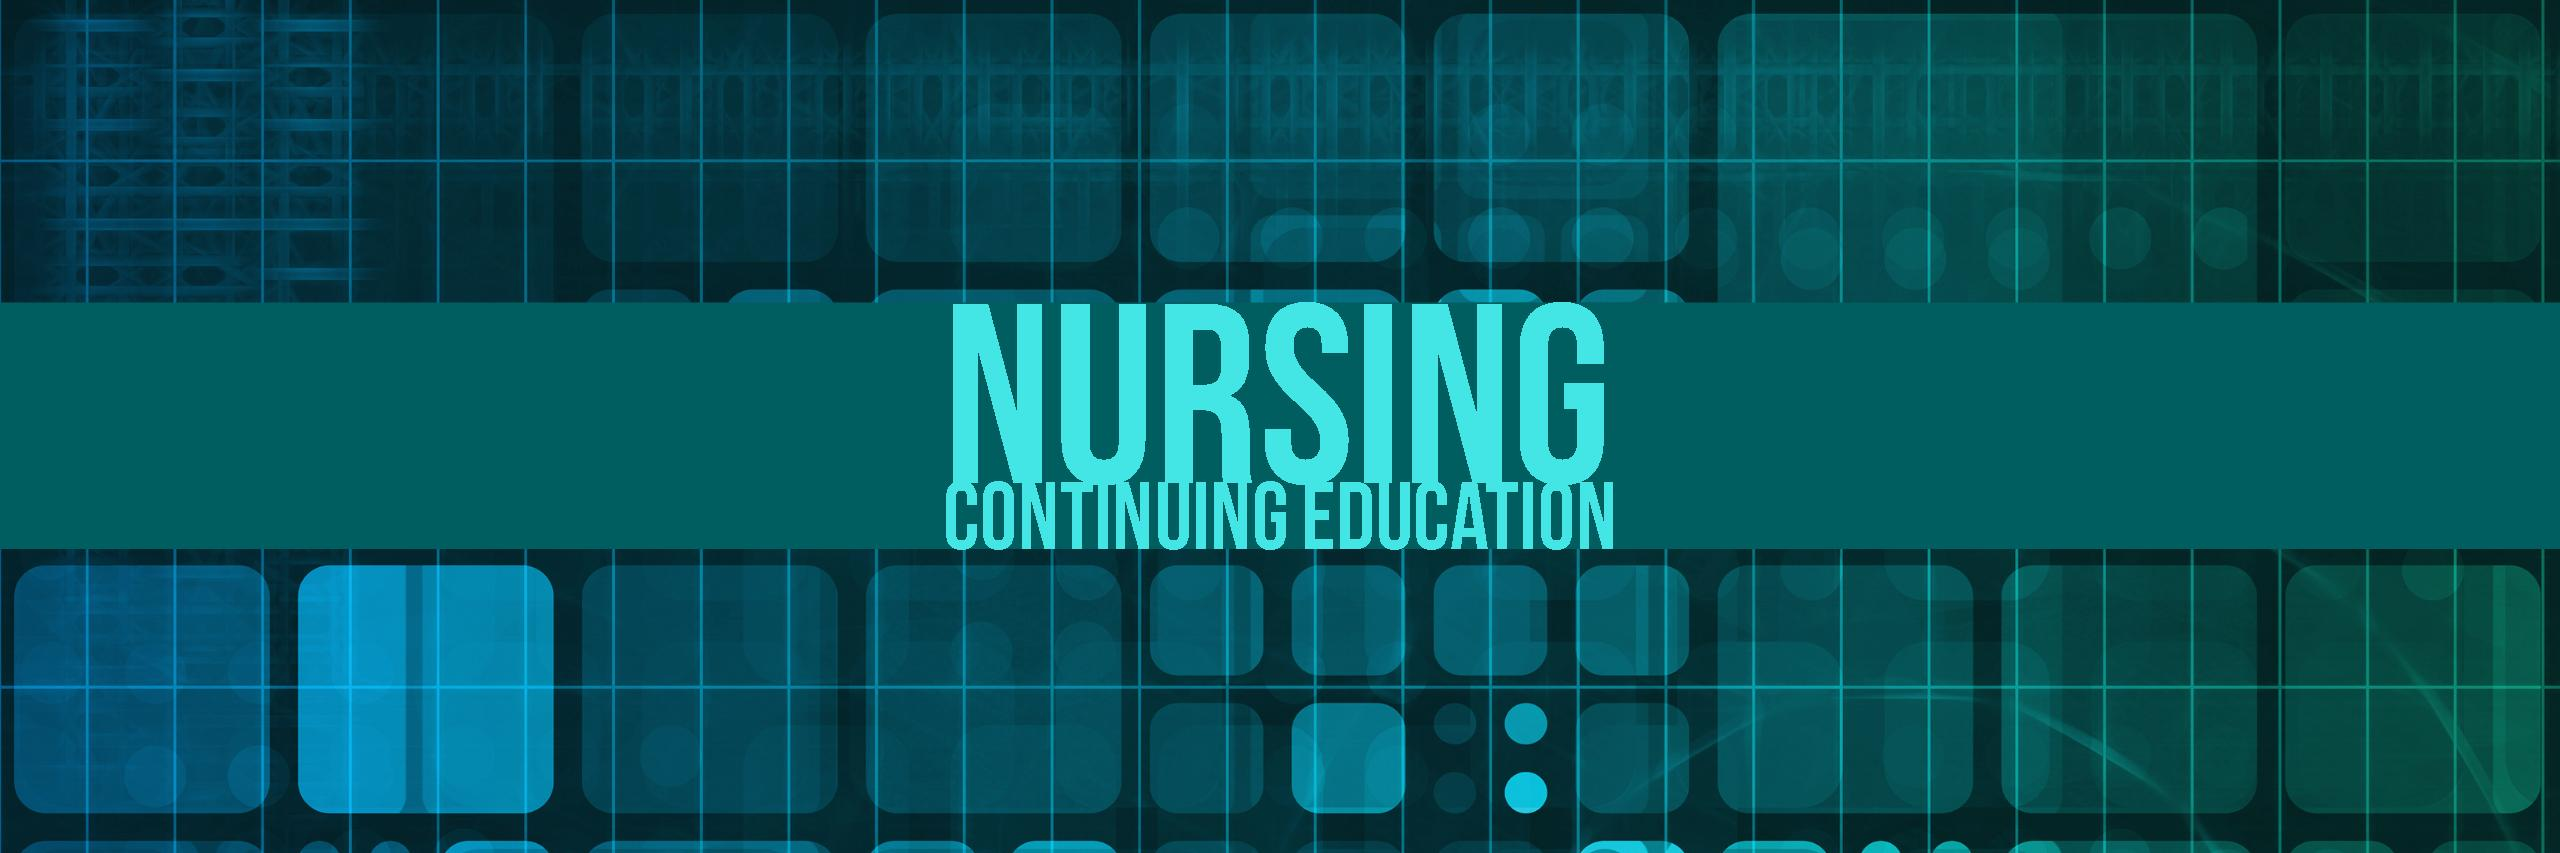 Nursing Continuing Education